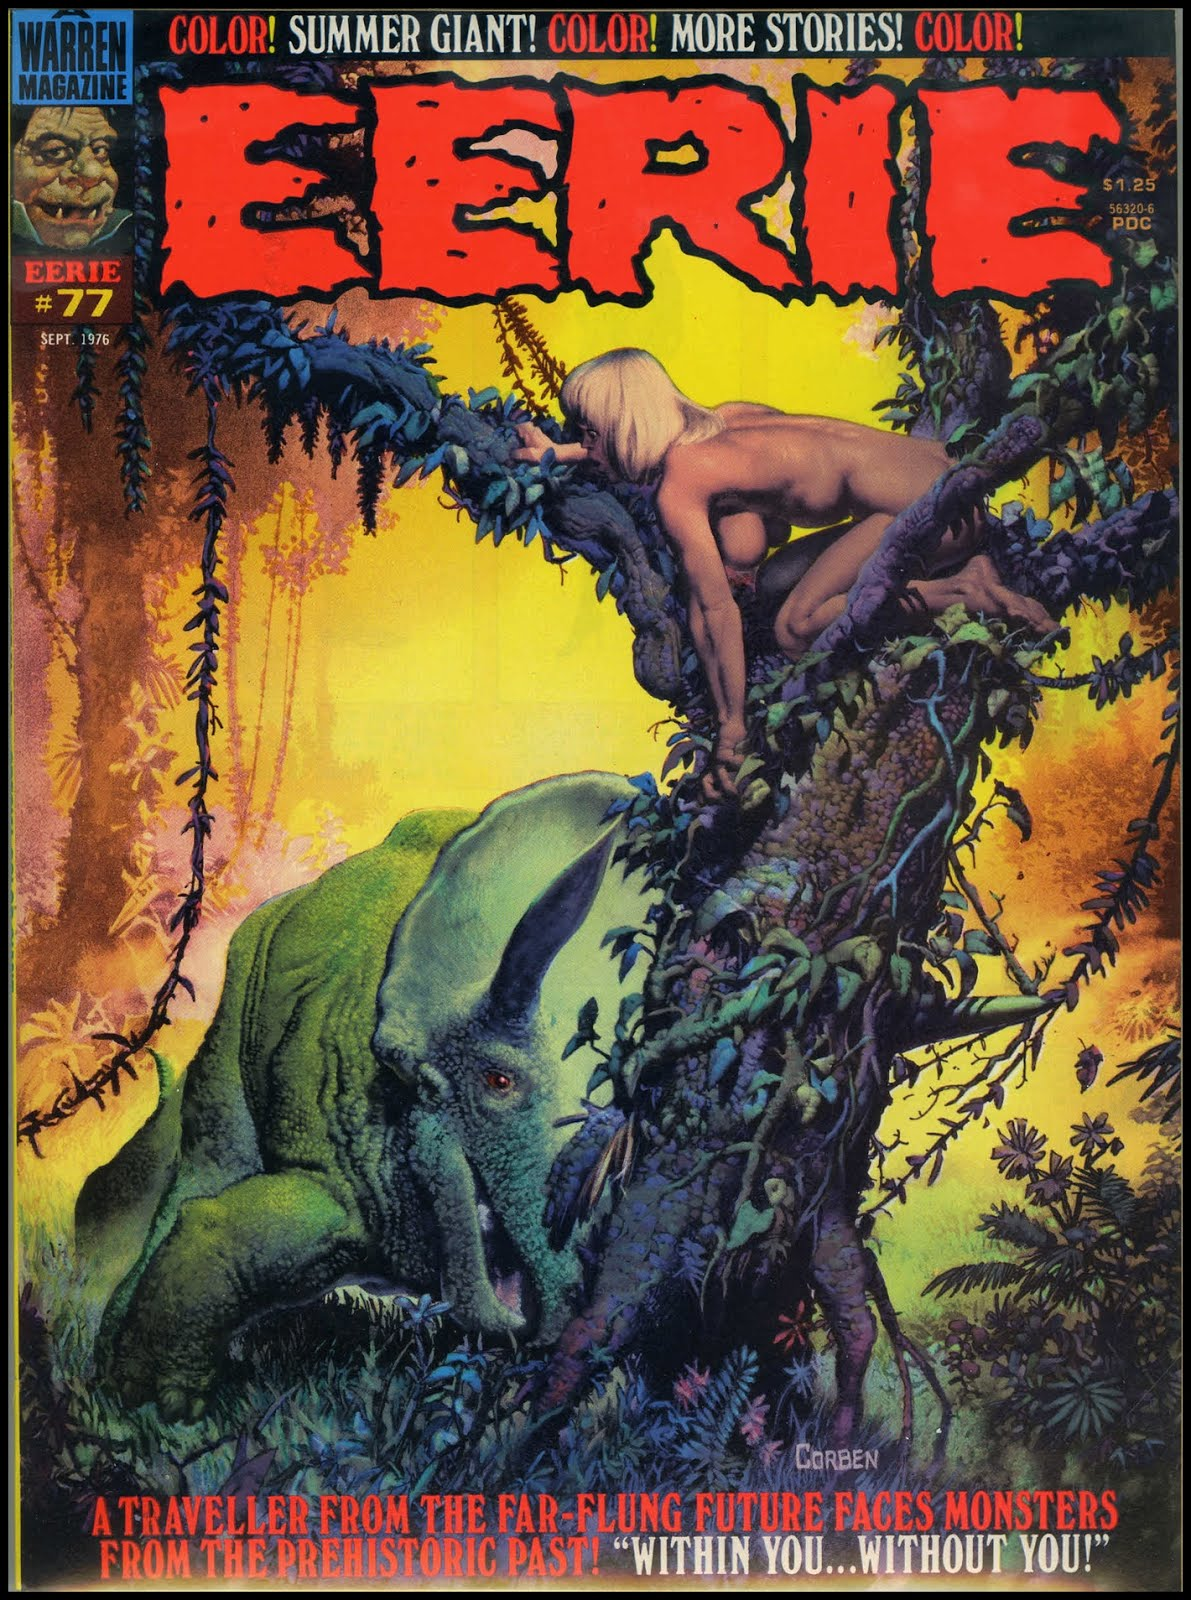 Eerie Richard Corben